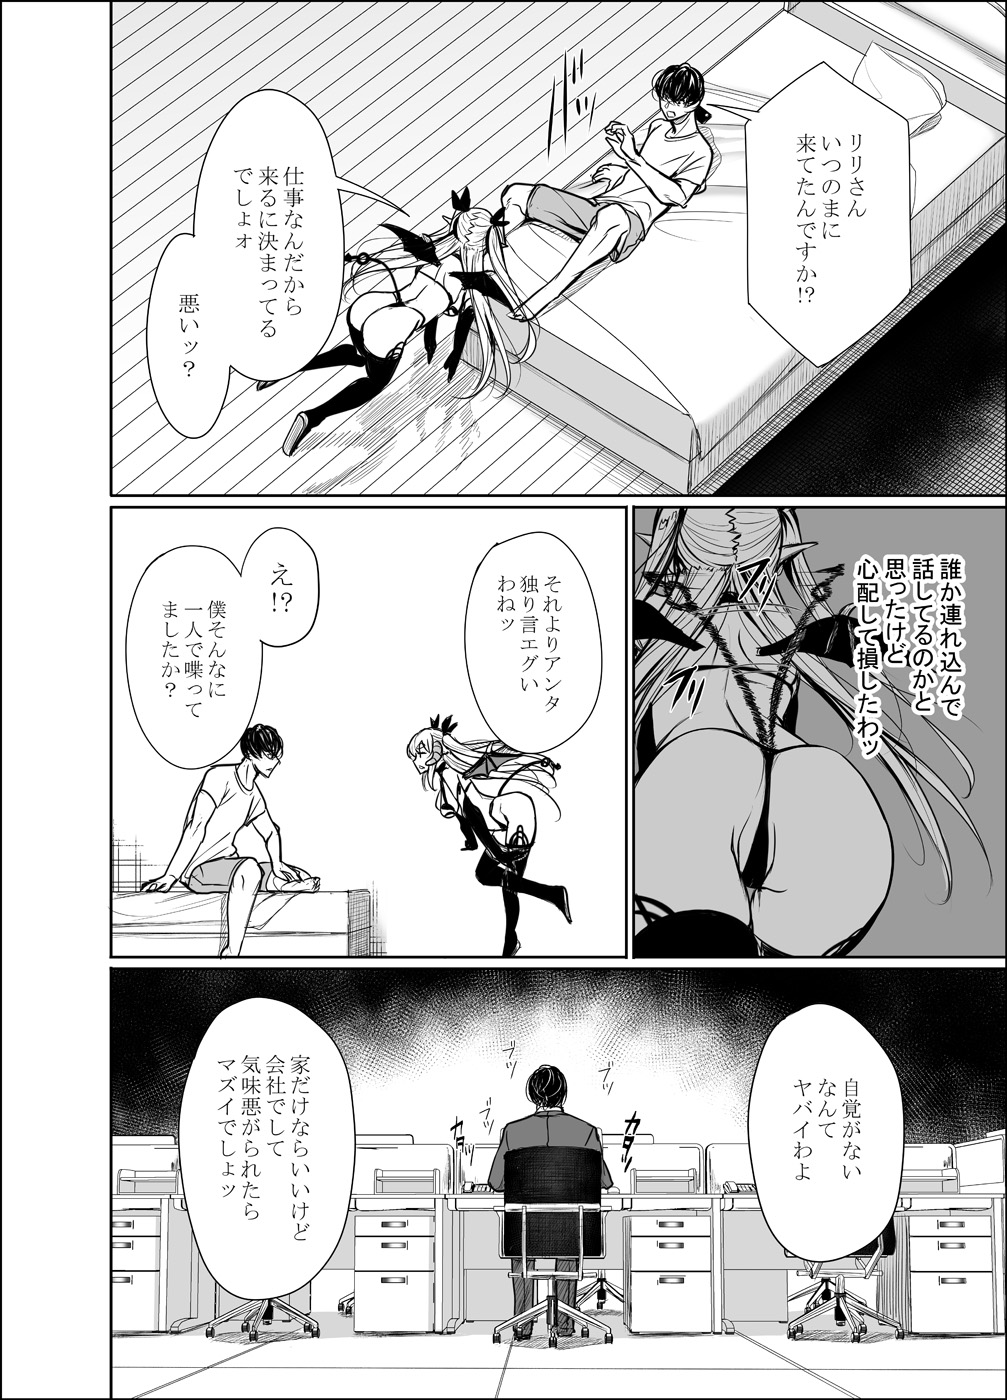 1boy 1girl bare_shoulders bed bedroom boots bow comic demon_girl demon_horns demon_tail demon_wings eyebrows_visible_through_hair formal gentsuki greyscale hair_bow highres horns kuroki_tsutomu lily_(gentsuki) long_hair monochrome on_bed original pointy_ears revealing_clothes salaryman shirt shorts sitting sitting_on_bed speech_bubble succubus suit t-shirt tail tail_wagging thick_eyebrows thigh-highs thigh_boots two_side_up wings wooden_floor